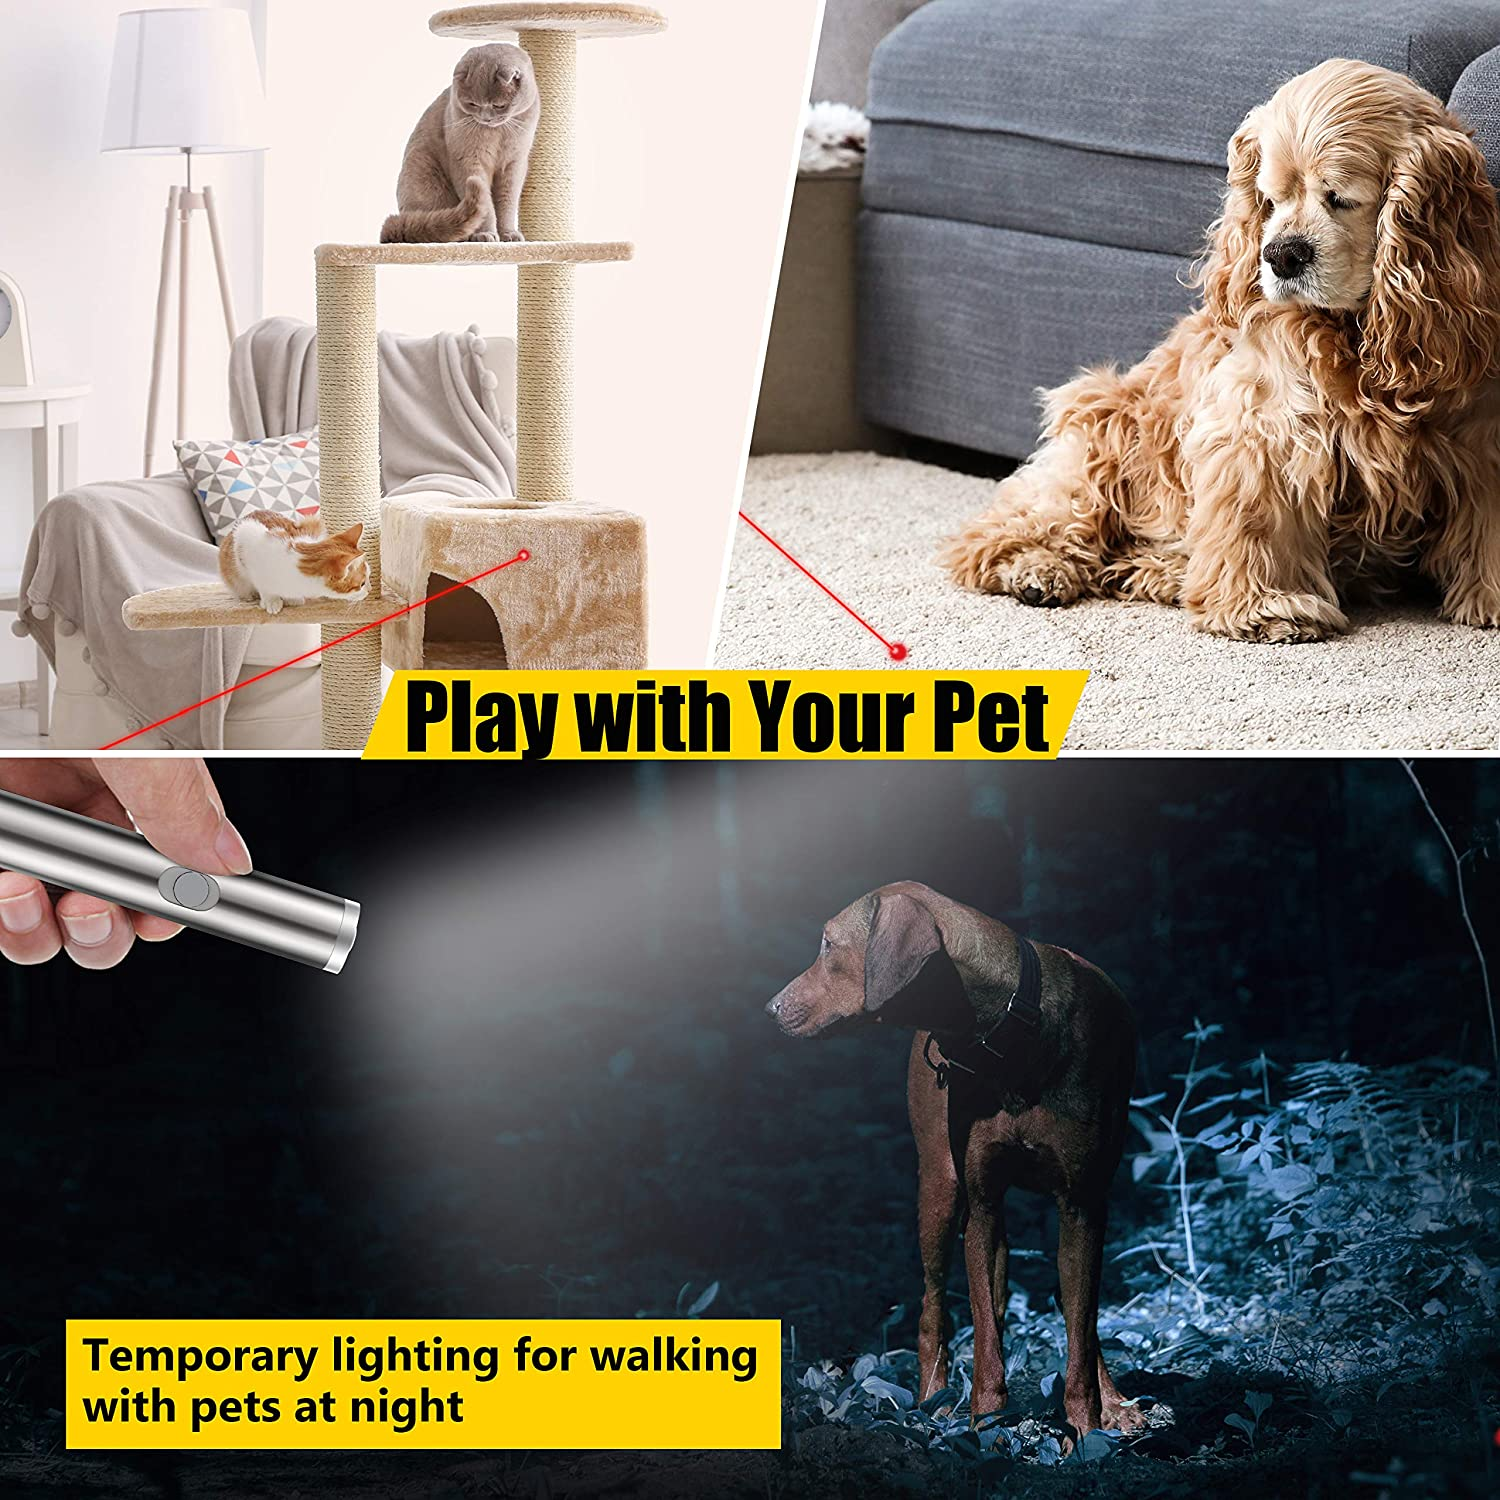 FYNIGO Cat Toys Wand,Interactive Light Toy for Cats and Dogs,2 in 1 Function Red Light Pointer and LED Flashlight,Pet Chaser Toys for Exercise(2 Pack)